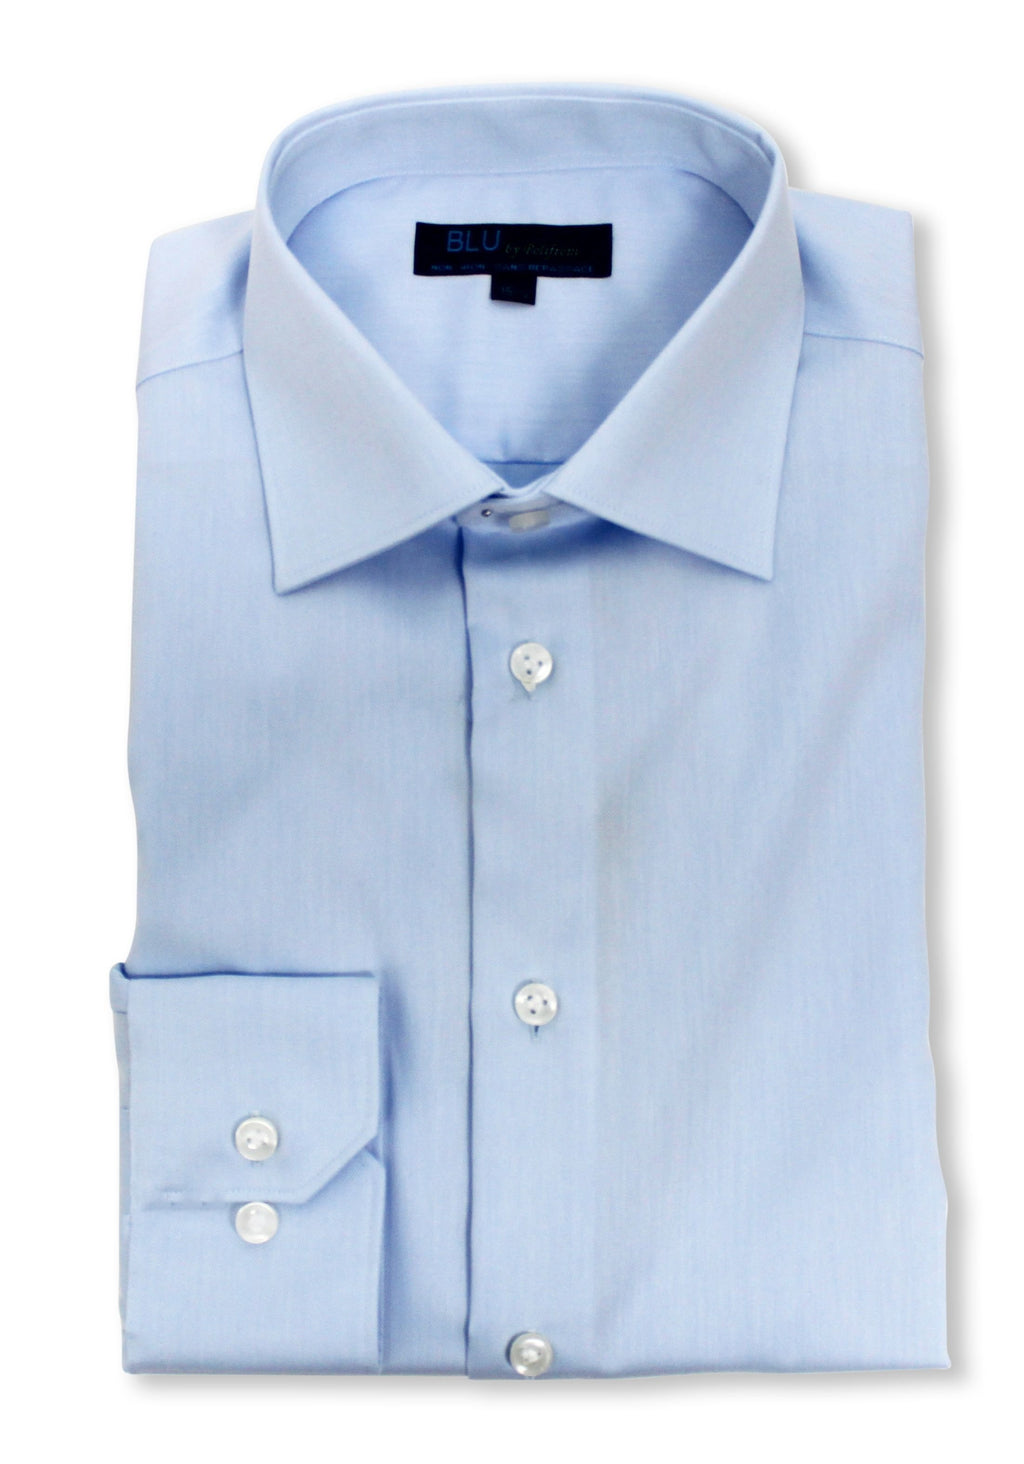 Polifroni Dress Shirt - Blu-360 - Powder Blue